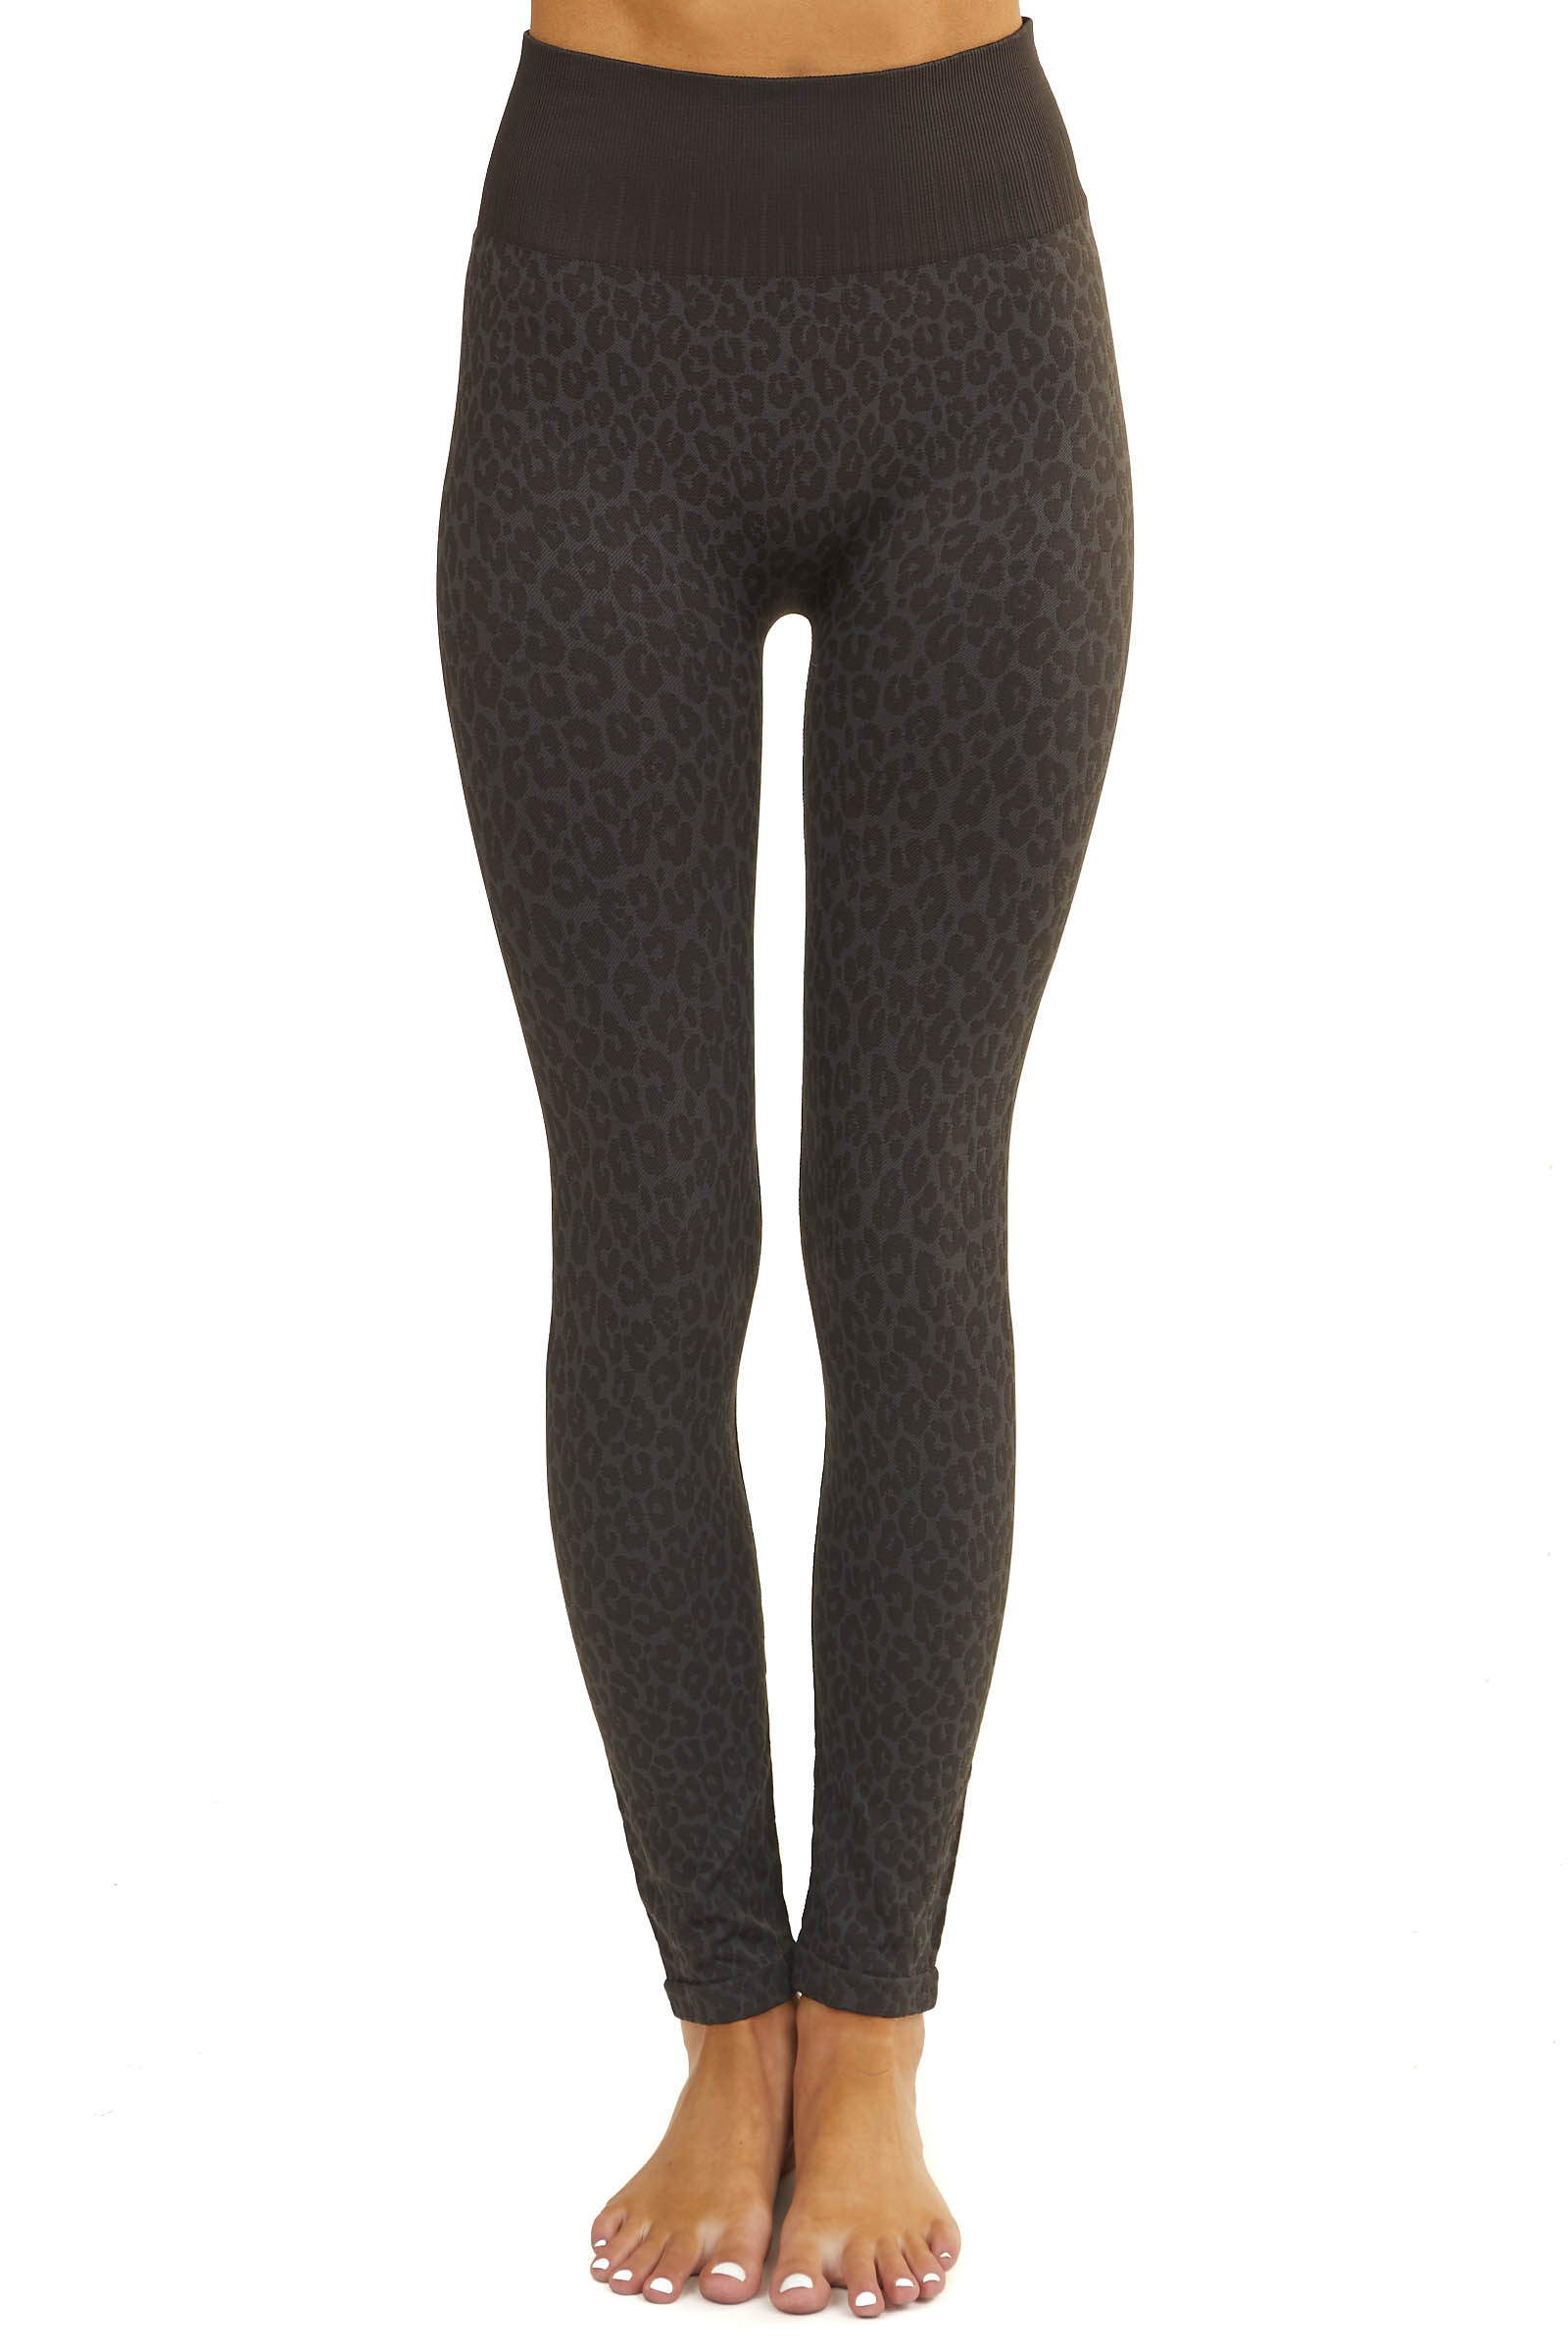 Charcoal and Stone Grey Leopard Print High Waisted Leggings